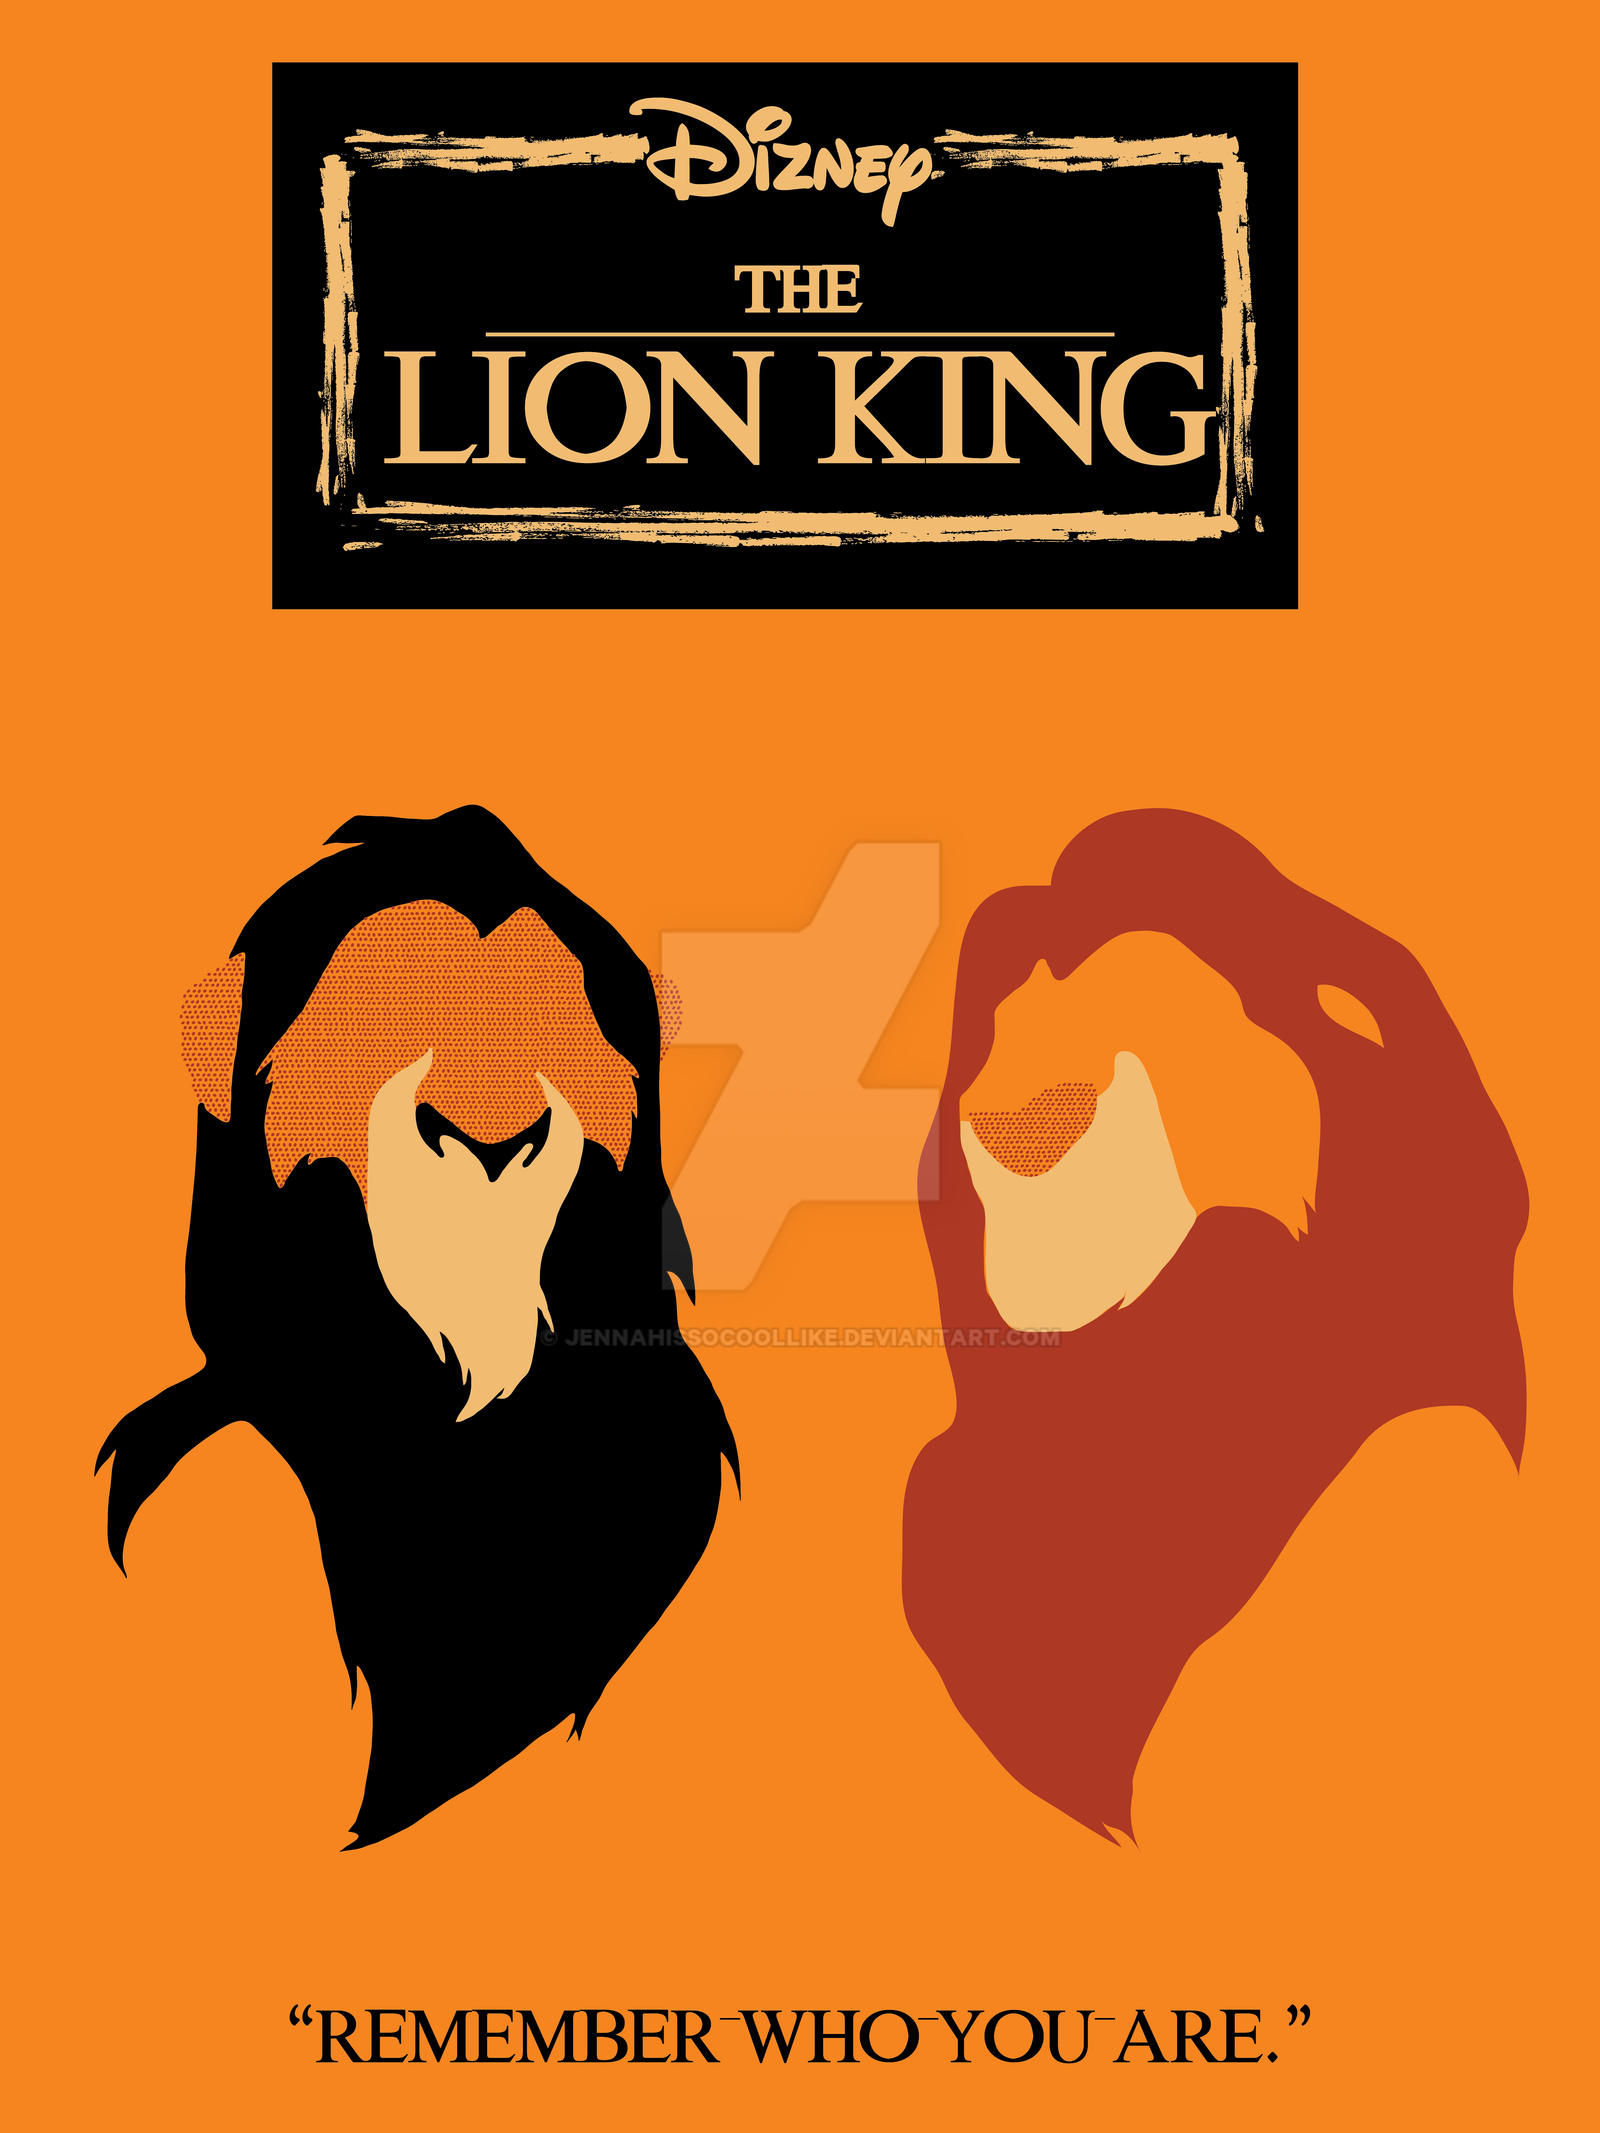 lion king minimalist poster by jennahissocoollike on